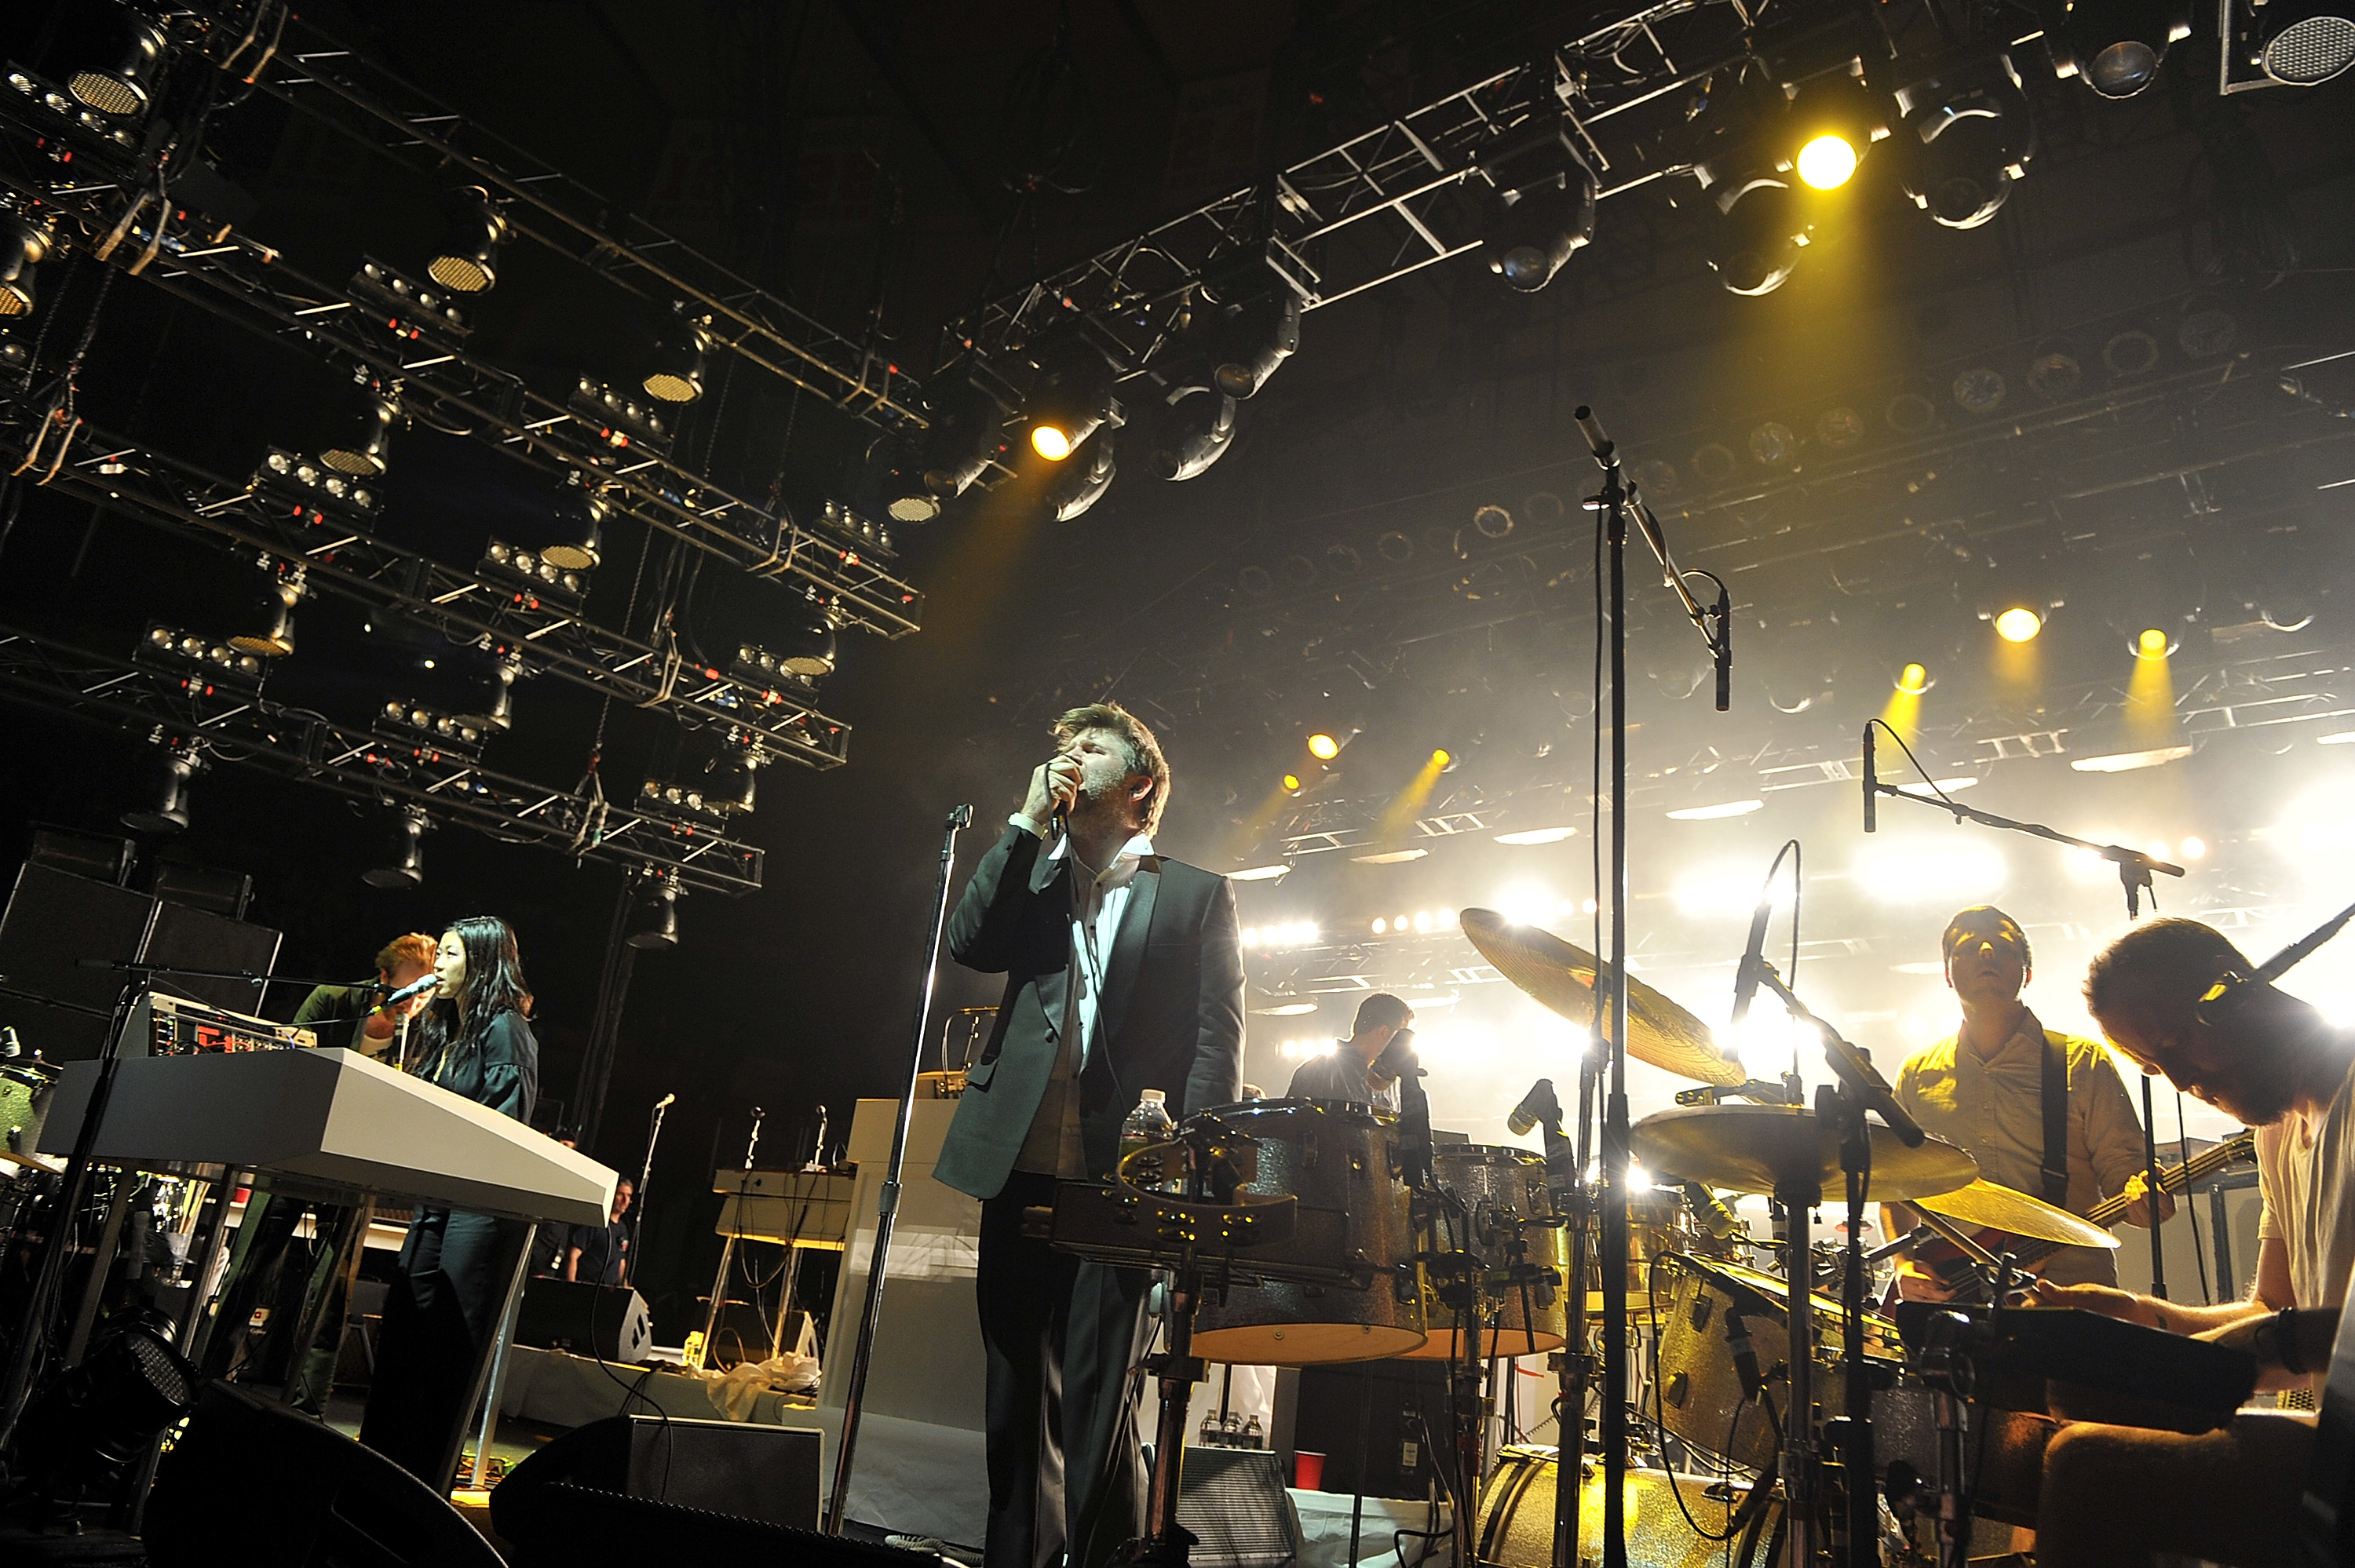 NEW YORK, NY - APRIL 02:  LCD Soundsystem performs at Madison Square Garden on April 2, 2011 in New York City.  (Photo by The